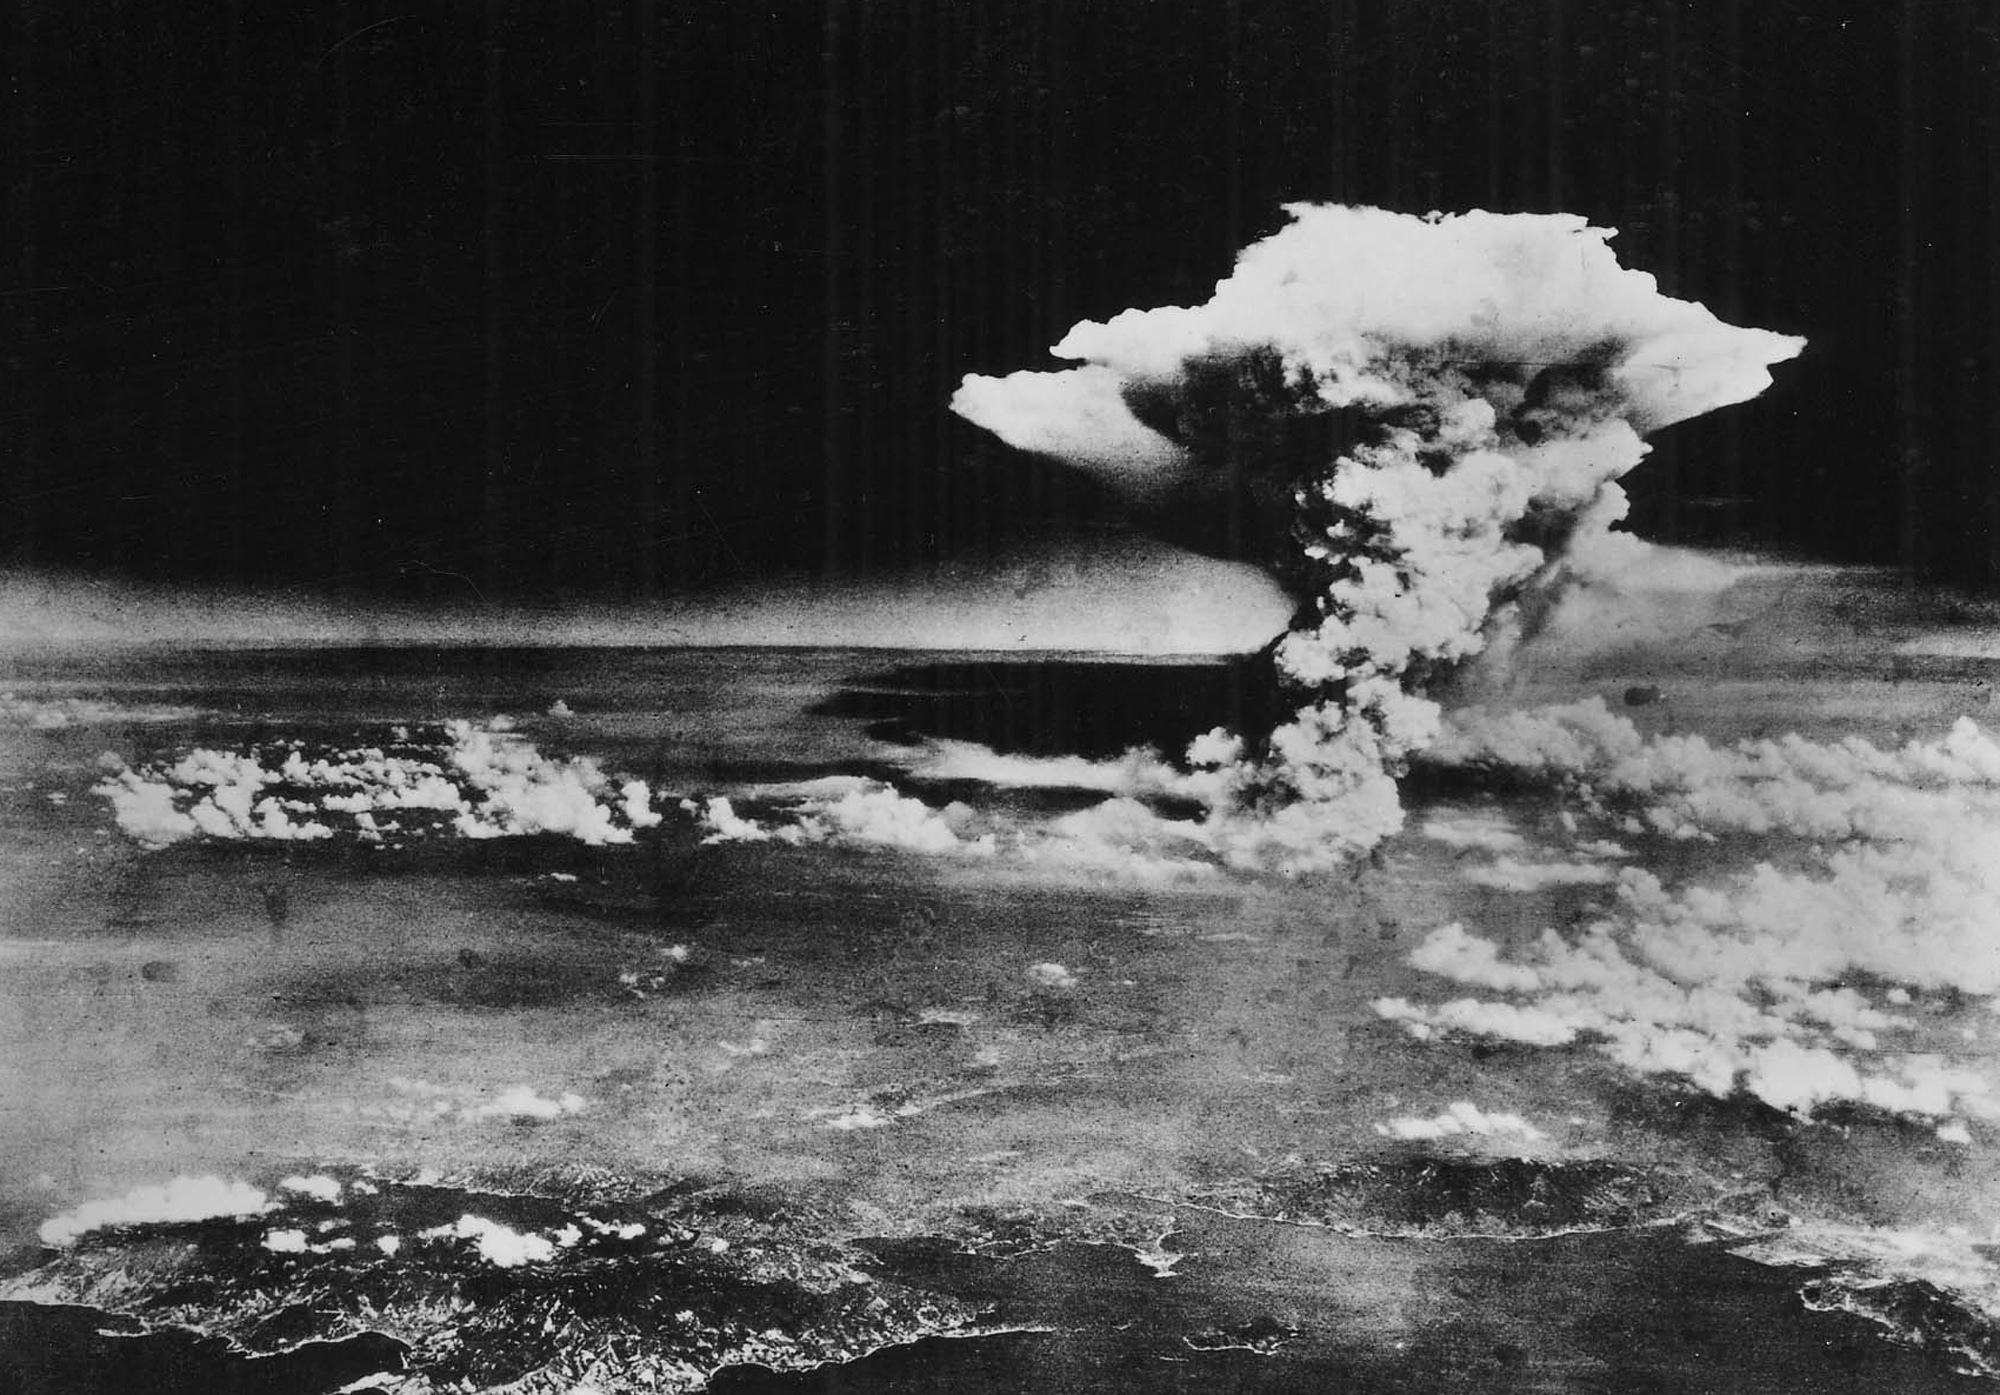 Lessons from Hiroshima, 75 years later